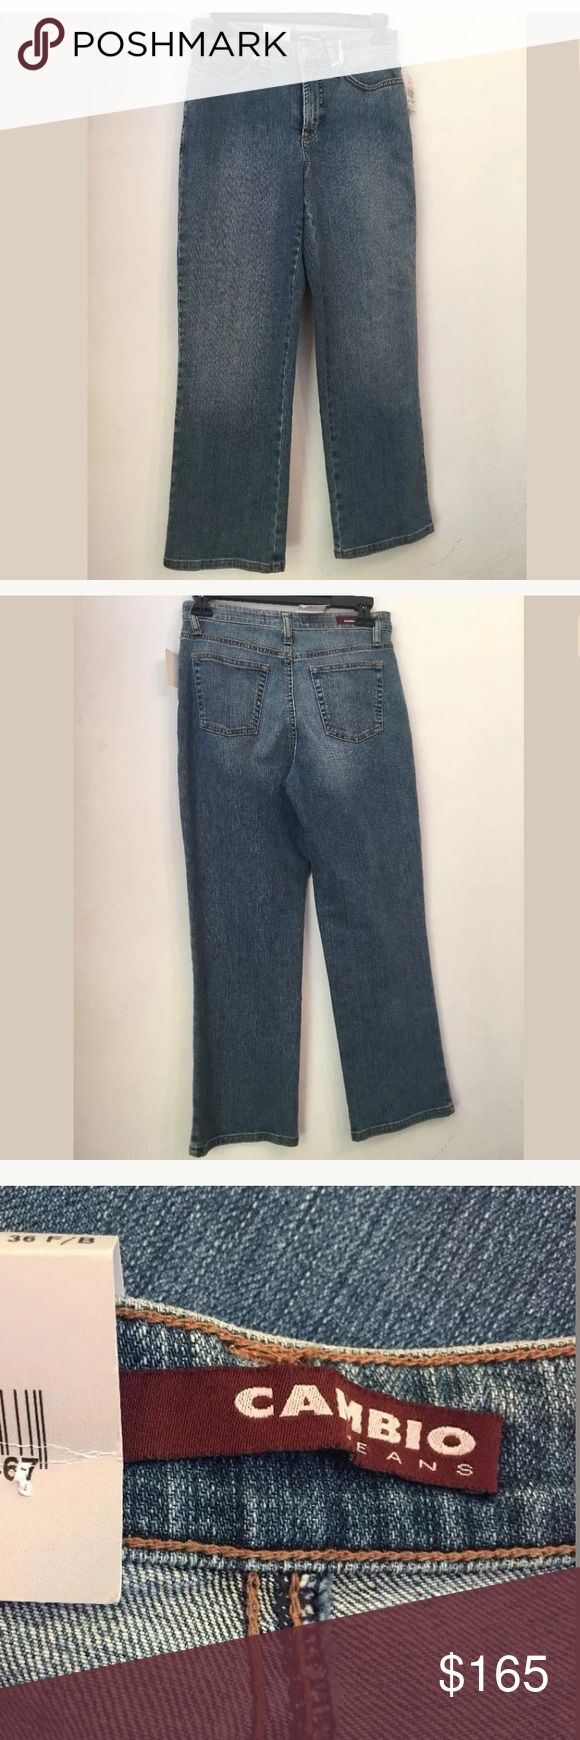 NWT $165 CAMBIO C16 Blue Jessica Capri Jeans Sz 4 NWT $165 CAMBIO C16 Blue Jessica Capri Jeans Size 4  Your satisfaction is our #1 priority.  This is why we ship twice daily Monday thru Saturday to get the item to you as quickly as possible!! :).  If for any reason you are not 100% satisfied please message us and we will work with you to make it right!!      Measurements: Waist: approx. 26 inches Inseam: approx. 24 inches  -Retails Price: $165 + TAX -Material: 98% Cotton, 2% Elastane Cambio…